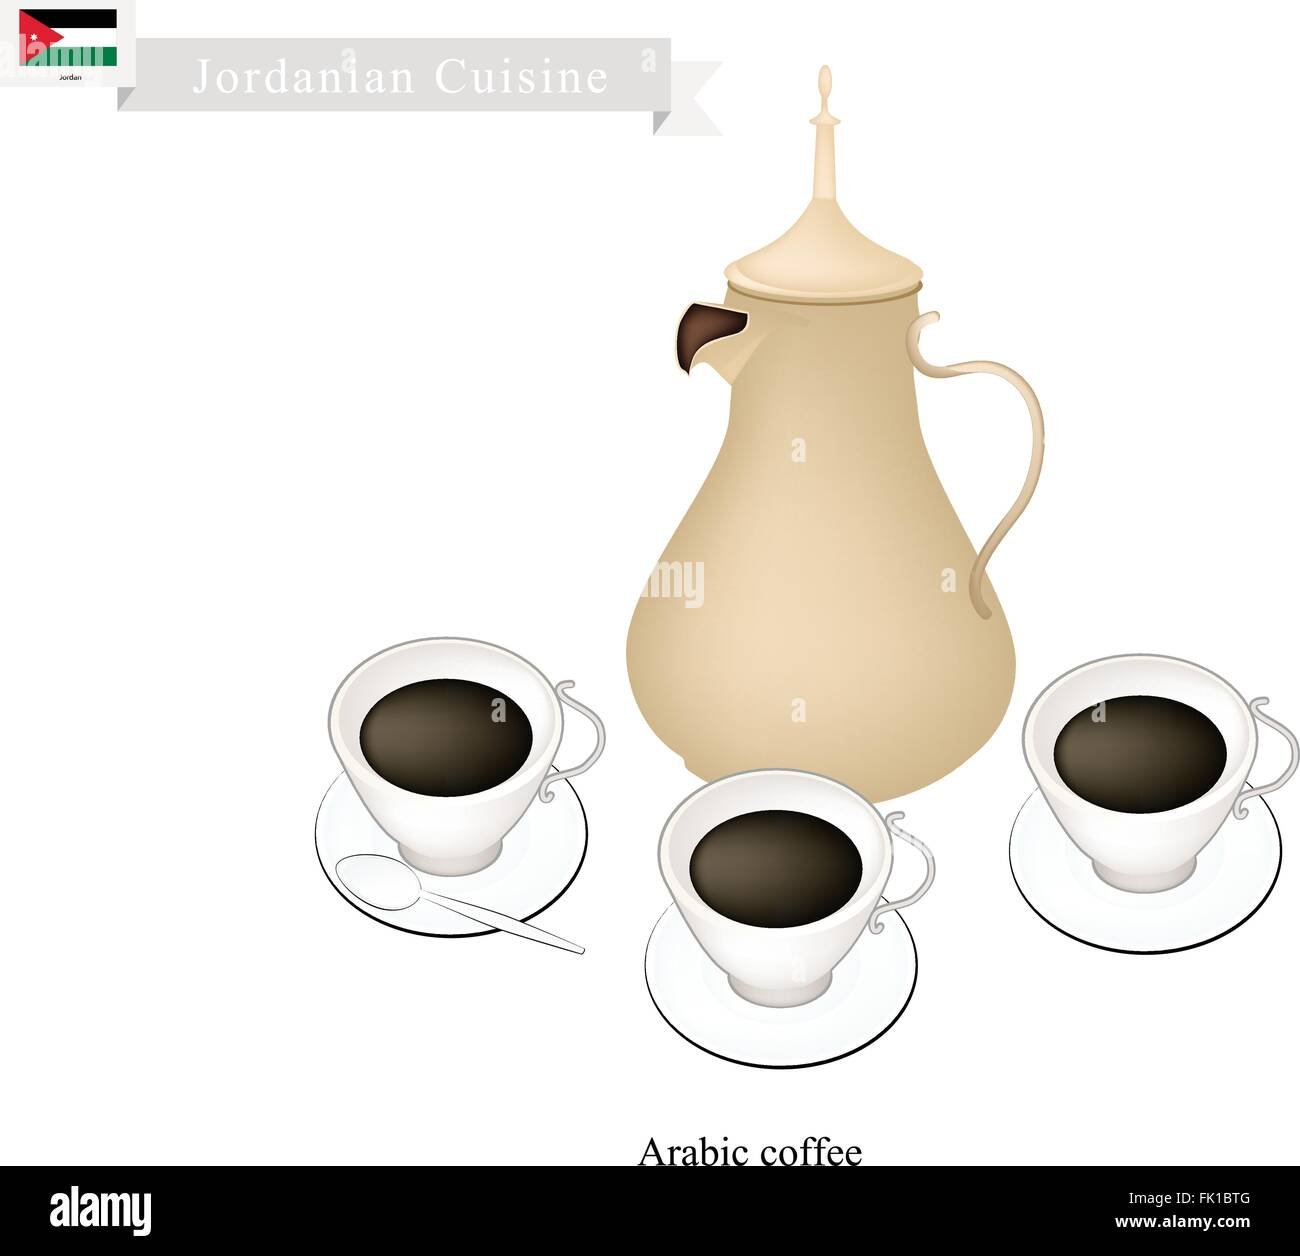 Jordanian Cuisine, Arabic Coffee or Coffee Brewed from Dark Roast Coffee Beans Spiced with Cardamom. One of The - Stock Vector